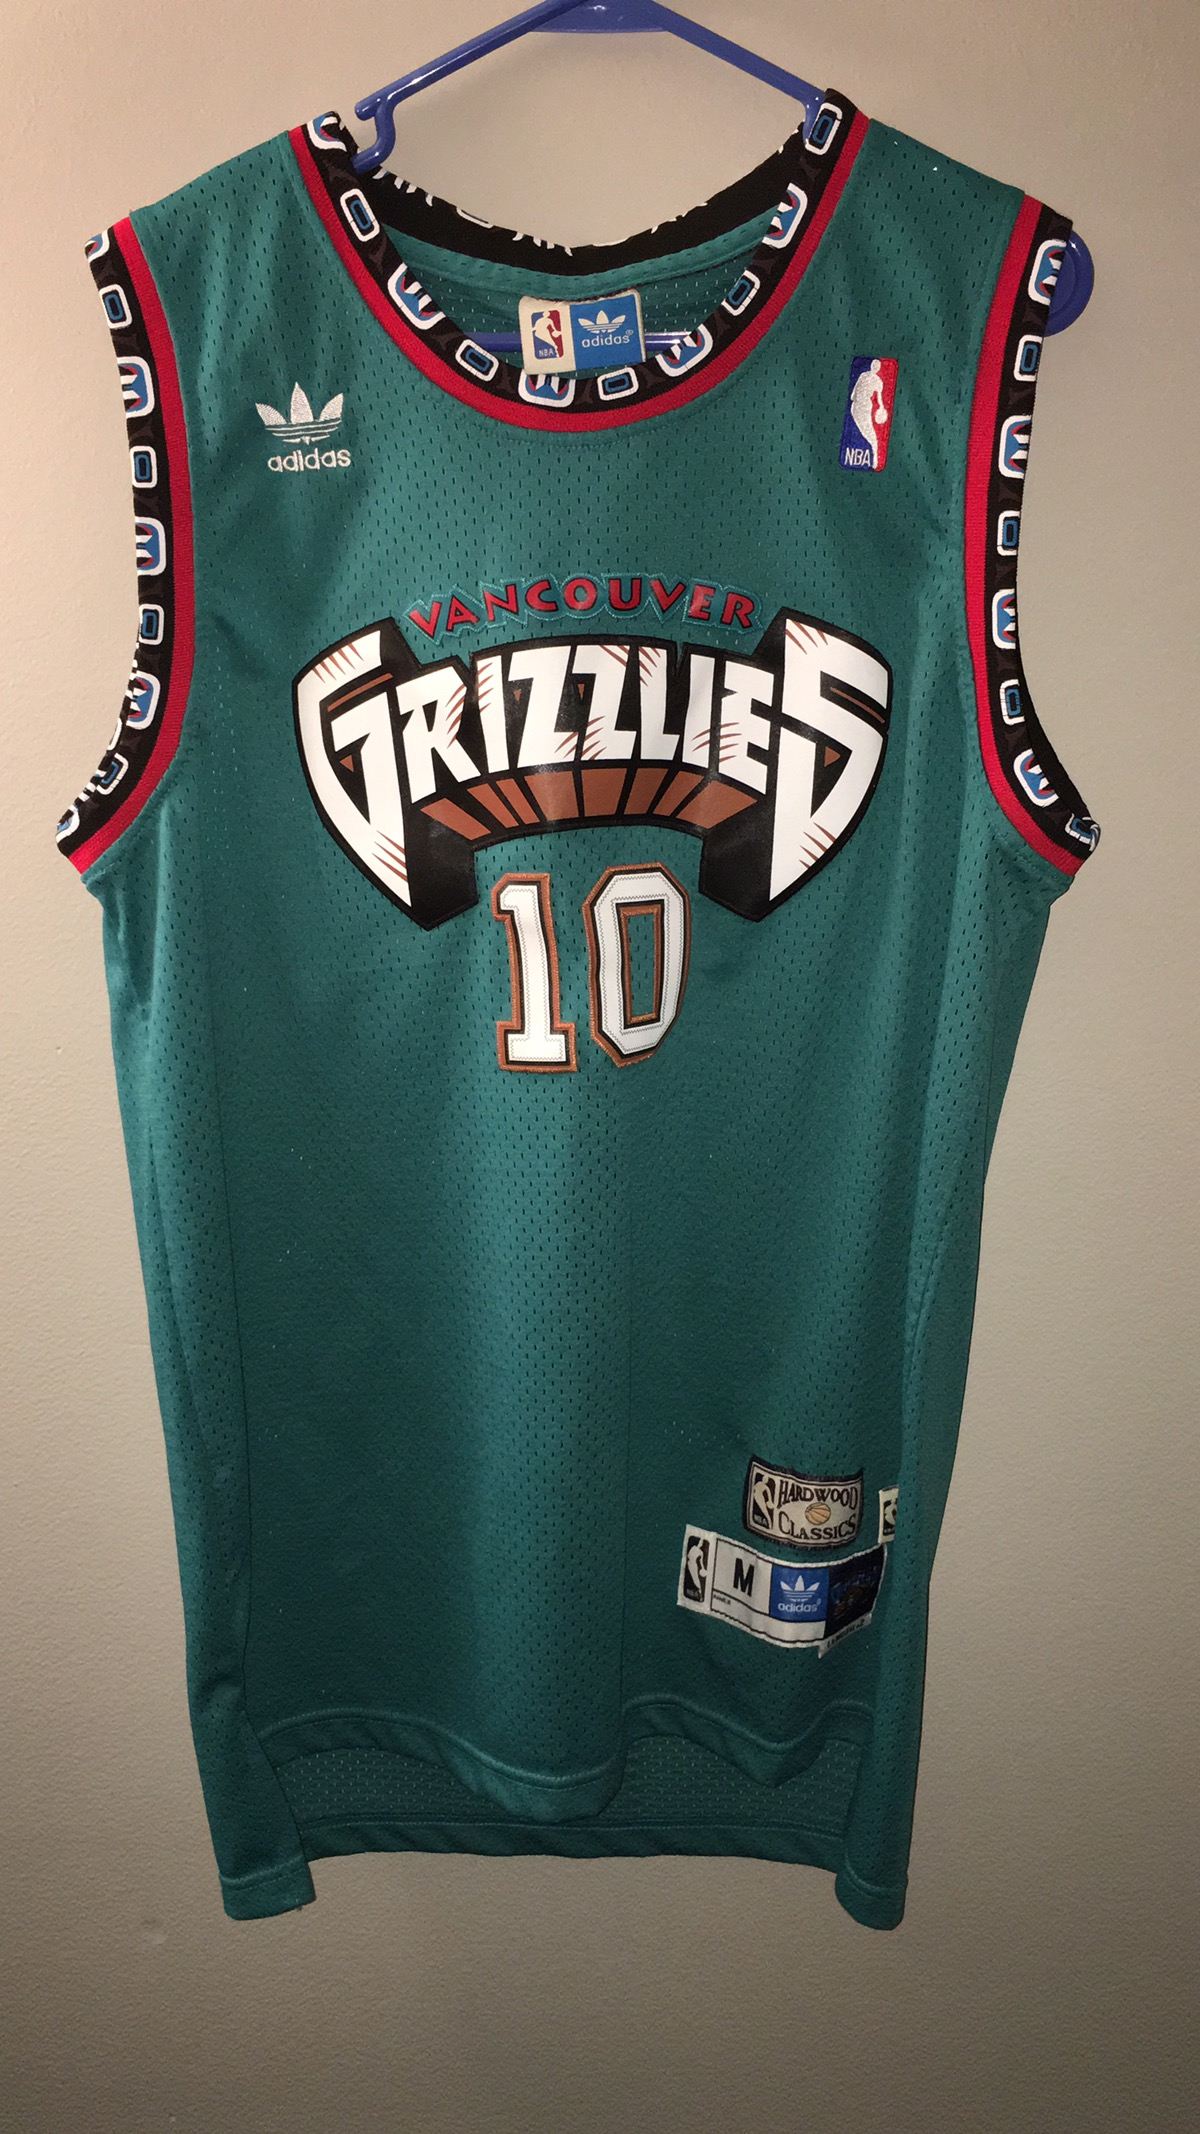 9e729f6d5a2 Adidas × Nba ×. MIKE BIBBY VANCOUVER GRIZZLIES JERSEY. Size  US M ...